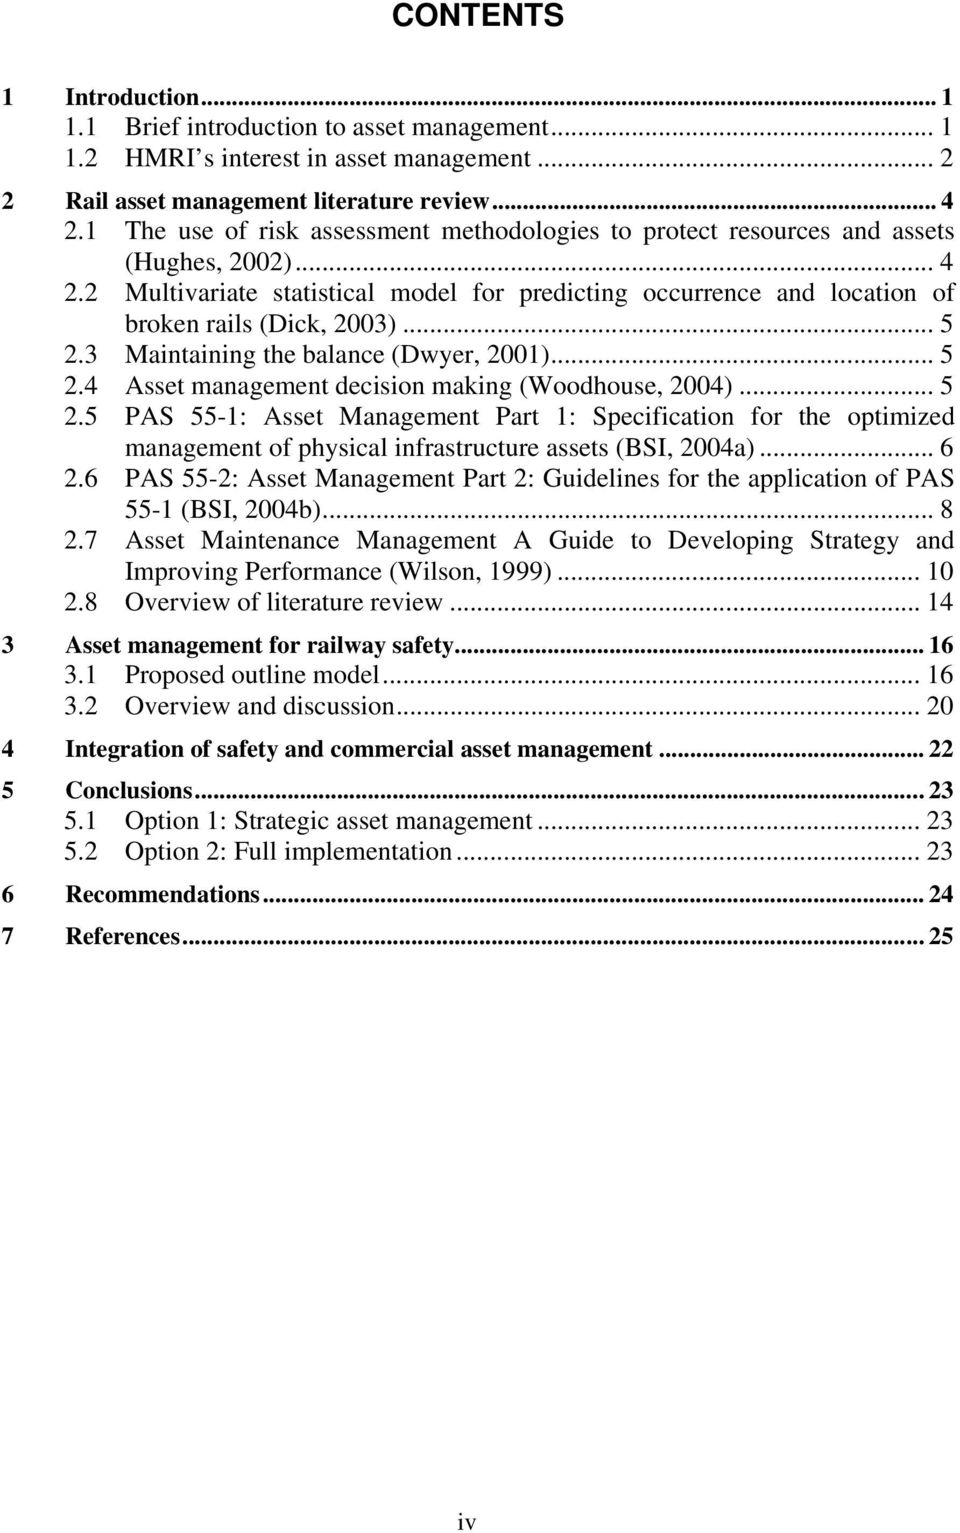 .. 5 2.3 Maintaining the balance (Dwyer, 2001)... 5 2.4 Asset management decision making (Woodhouse, 2004)... 5 2.5 PAS 55-1: Asset Management Part 1: Specification for the optimized management of physical infrastructure assets (BSI, 2004a).